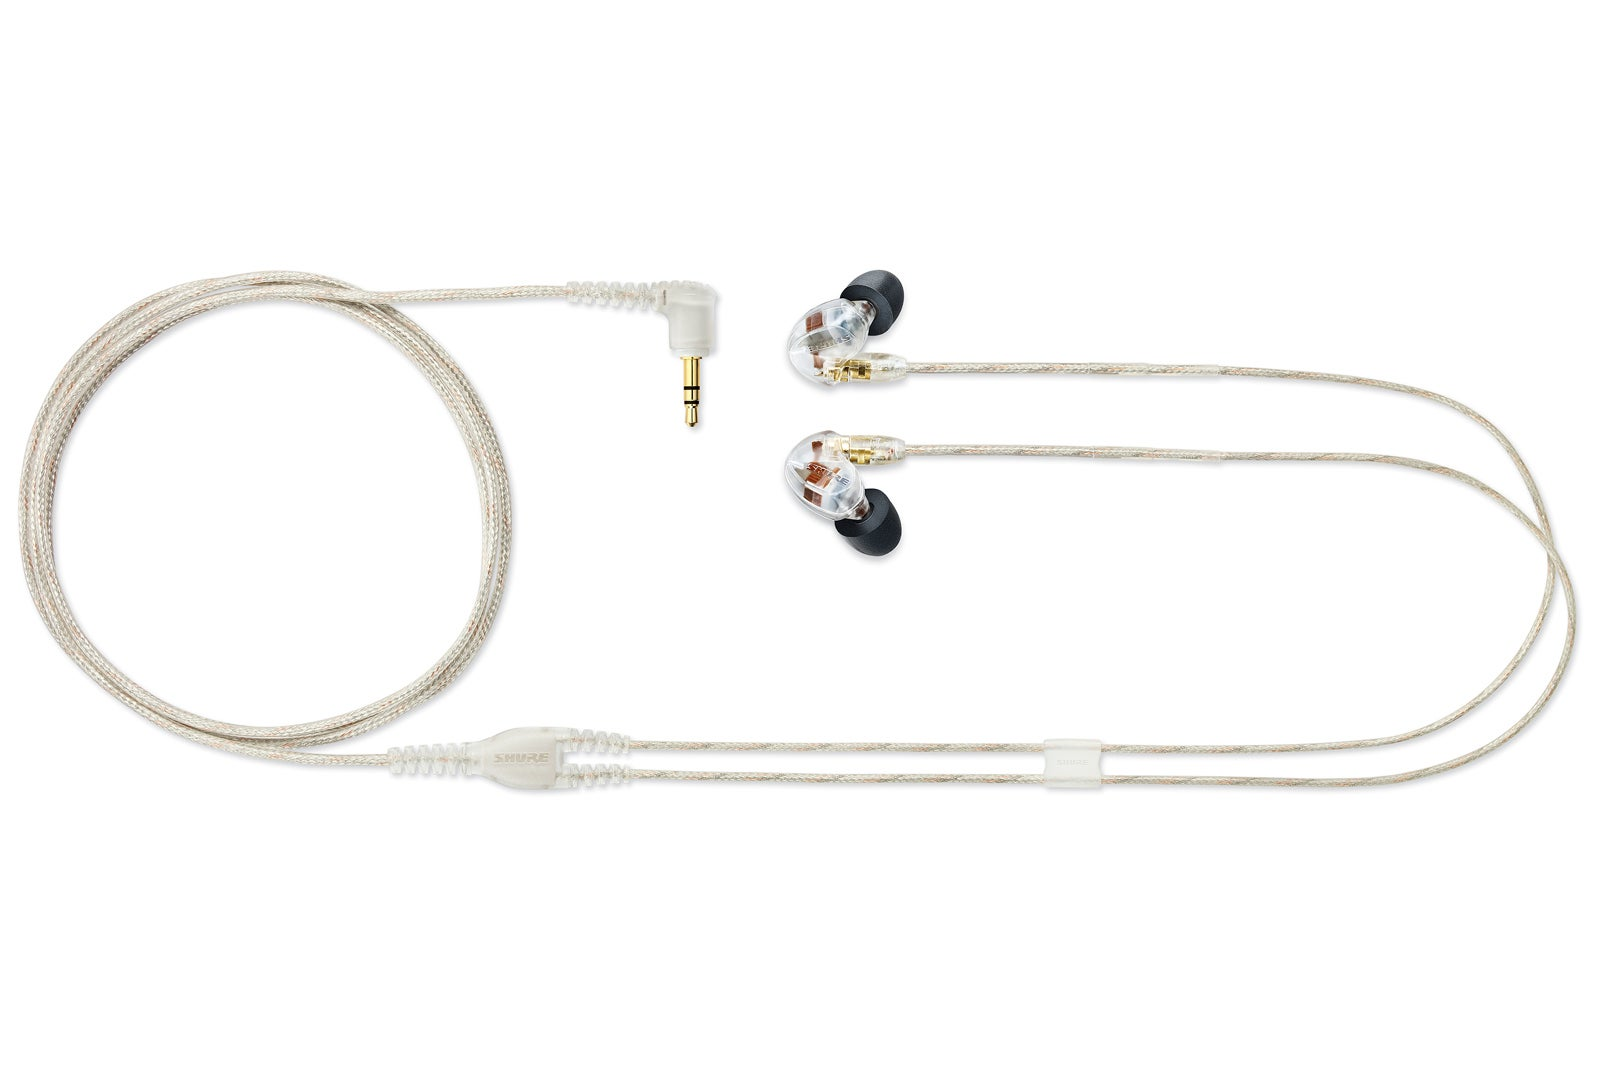 Shure Se535 In Ear Headphones Review Great Sound And